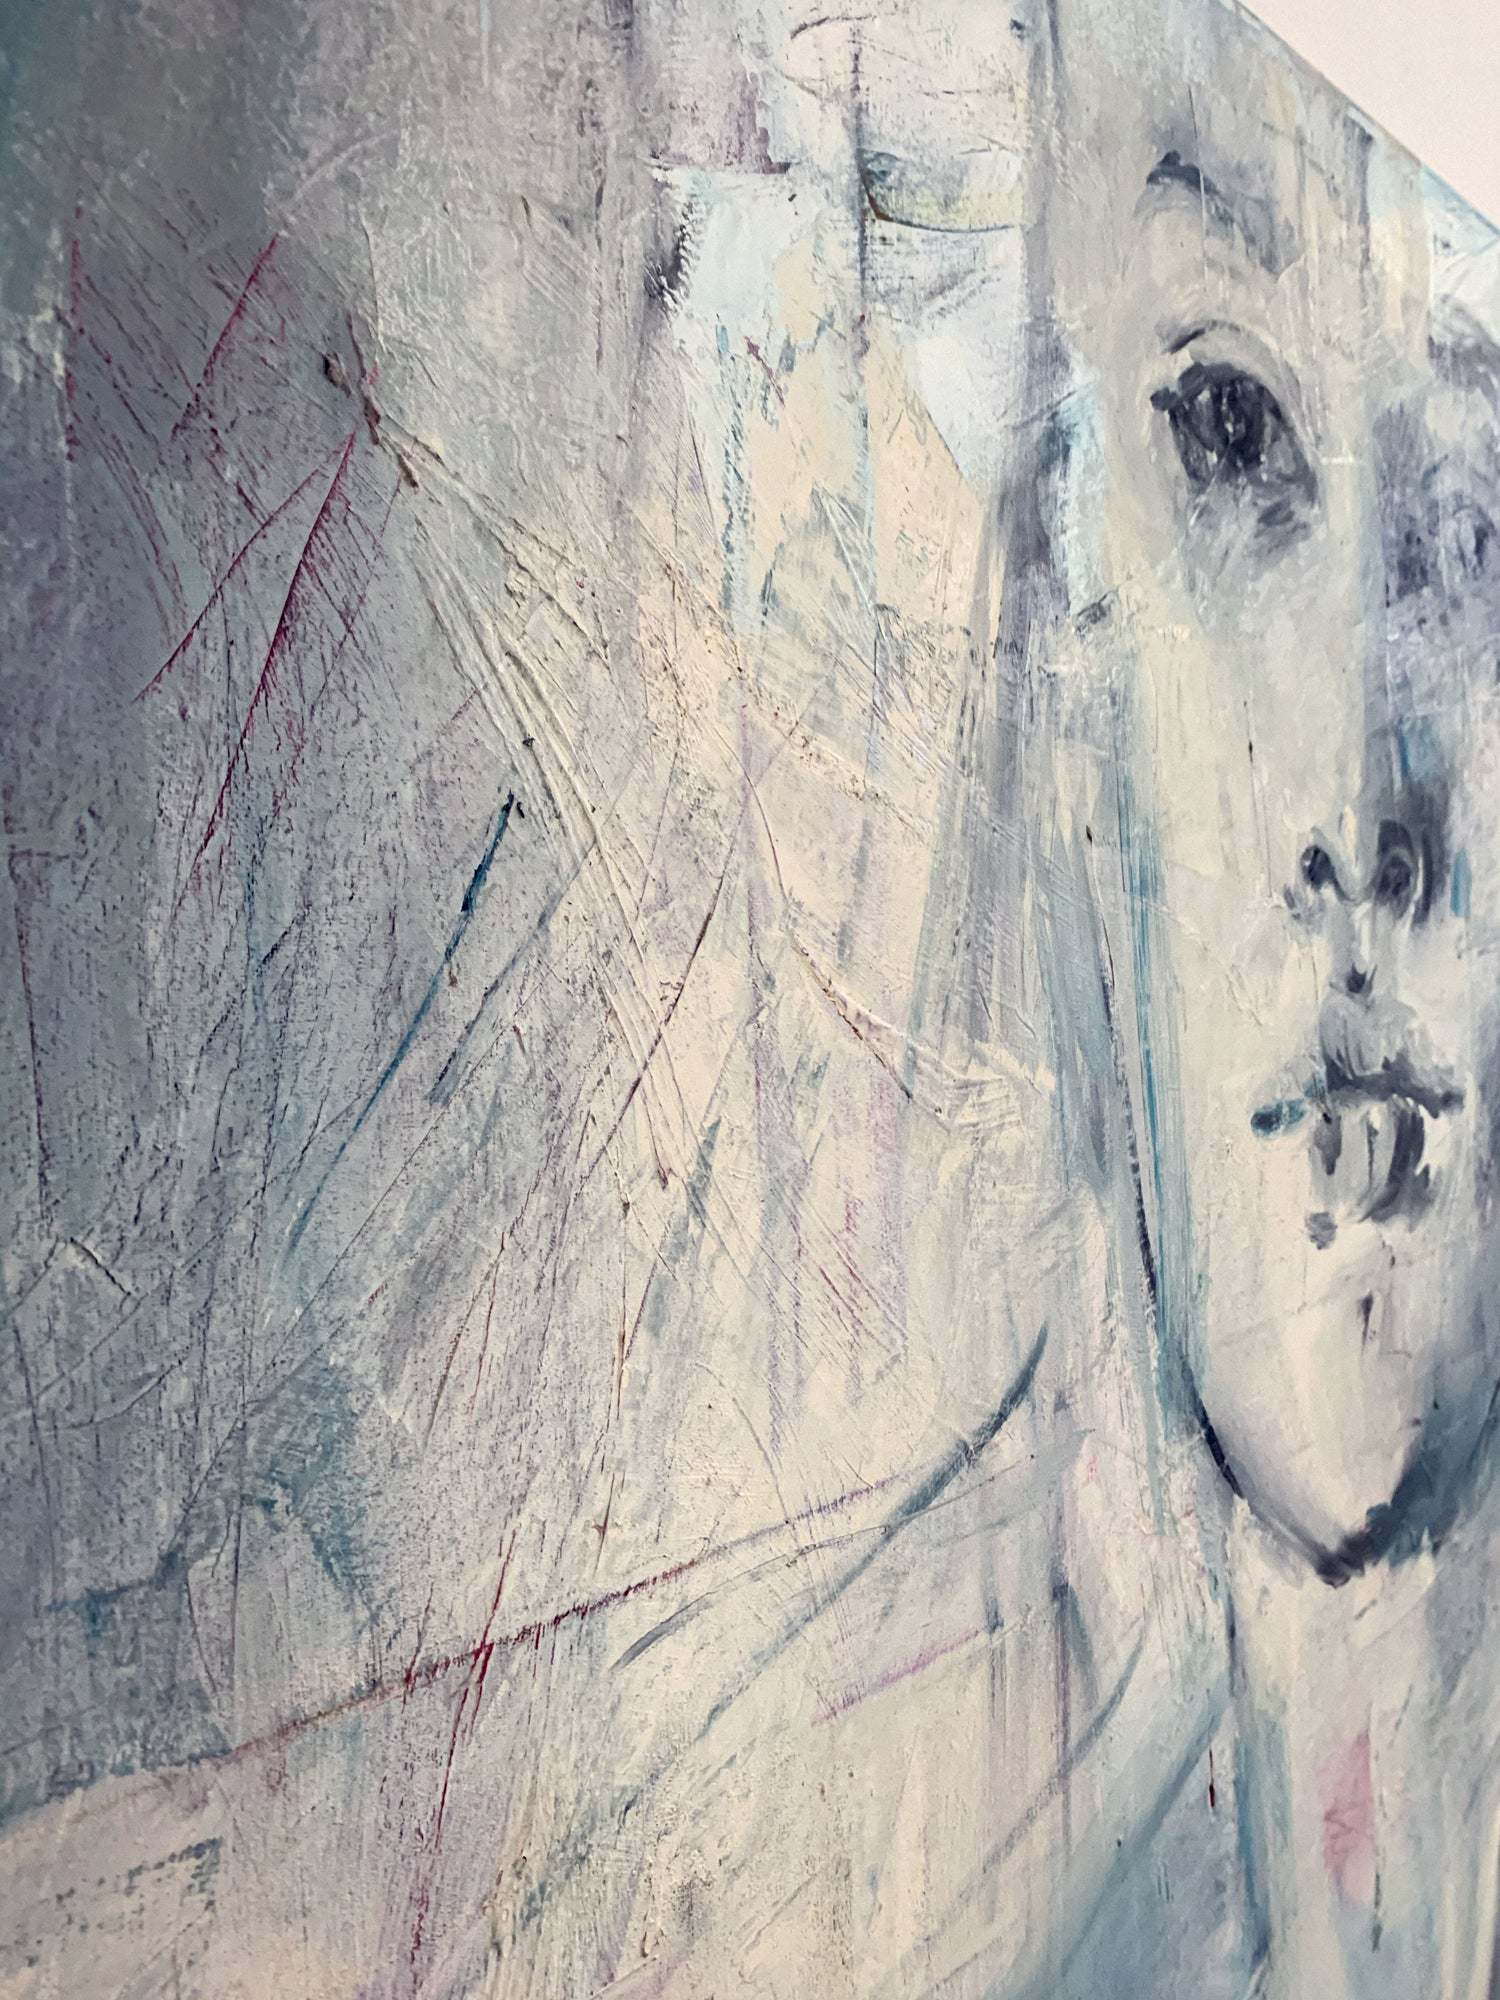 Agnes-Cecile our great love story